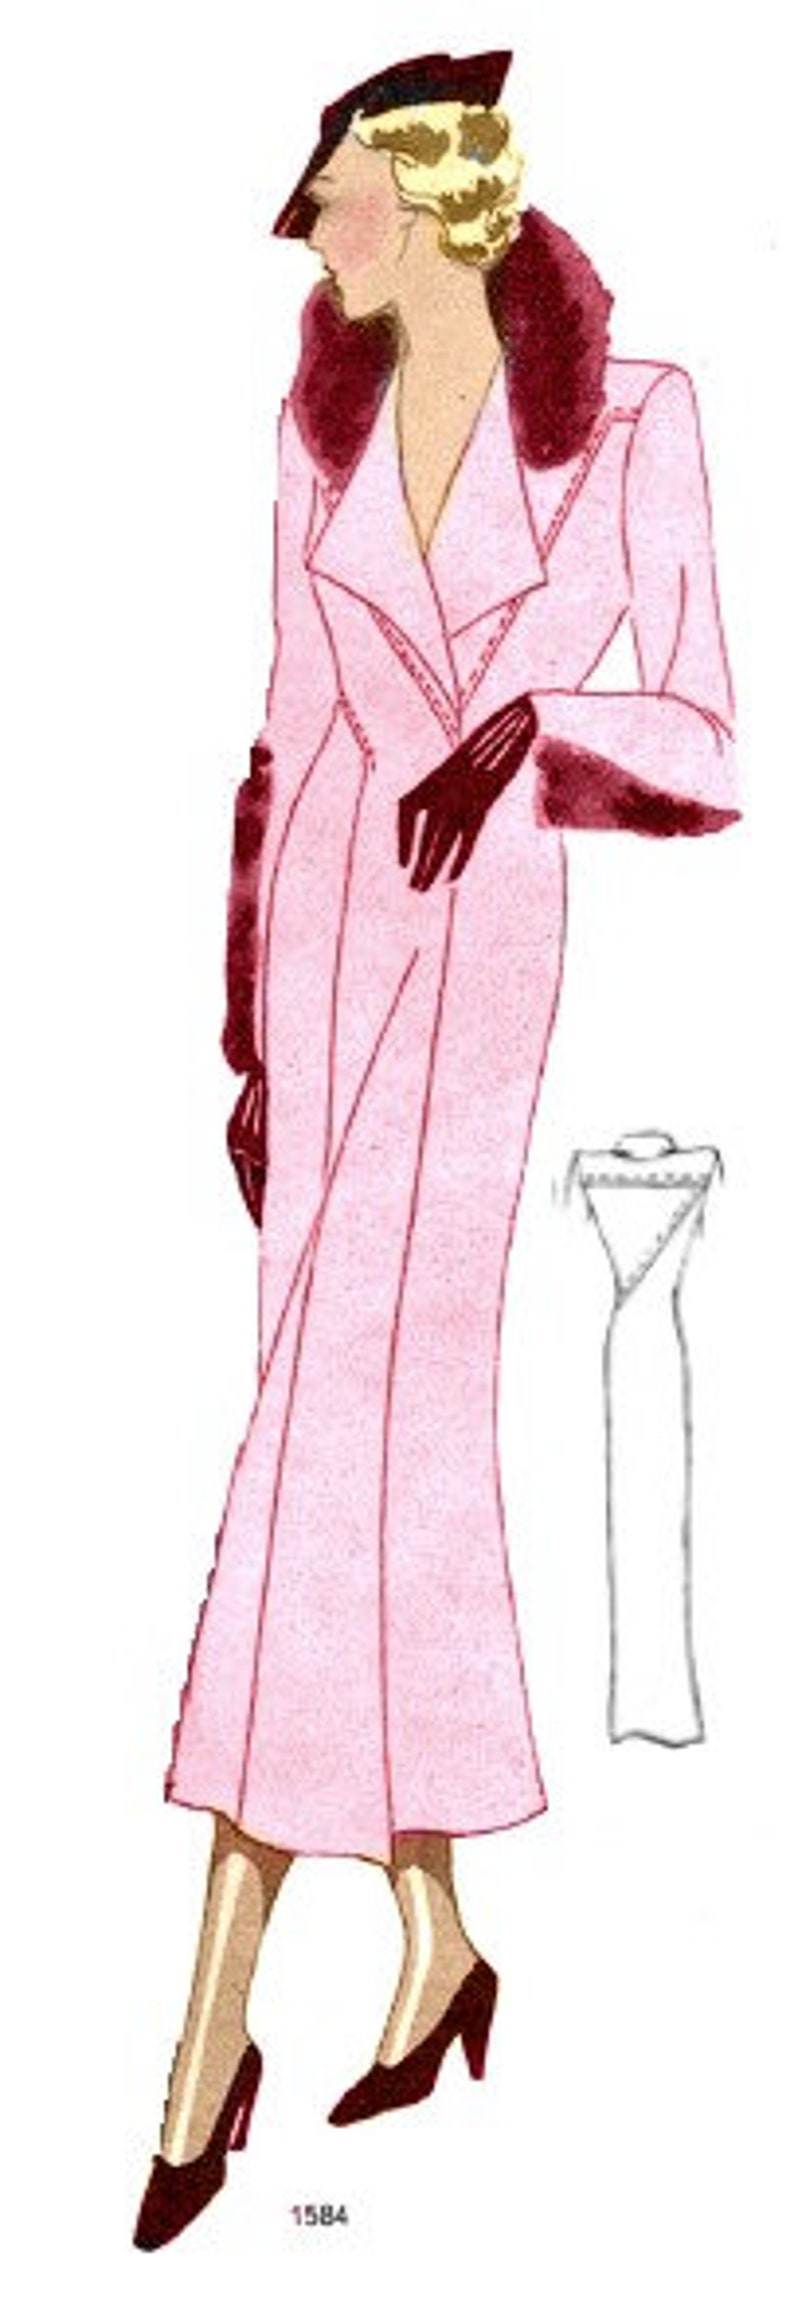 1930s Sewing Patterns- Dresses, Pants, Tops Plus Size (or any size) Vintage 1934 Dress Sewing Pattern - PDF - Pattern 1584 Delphine 1930s 30s Patterns Instant Download $8.35 AT vintagedancer.com